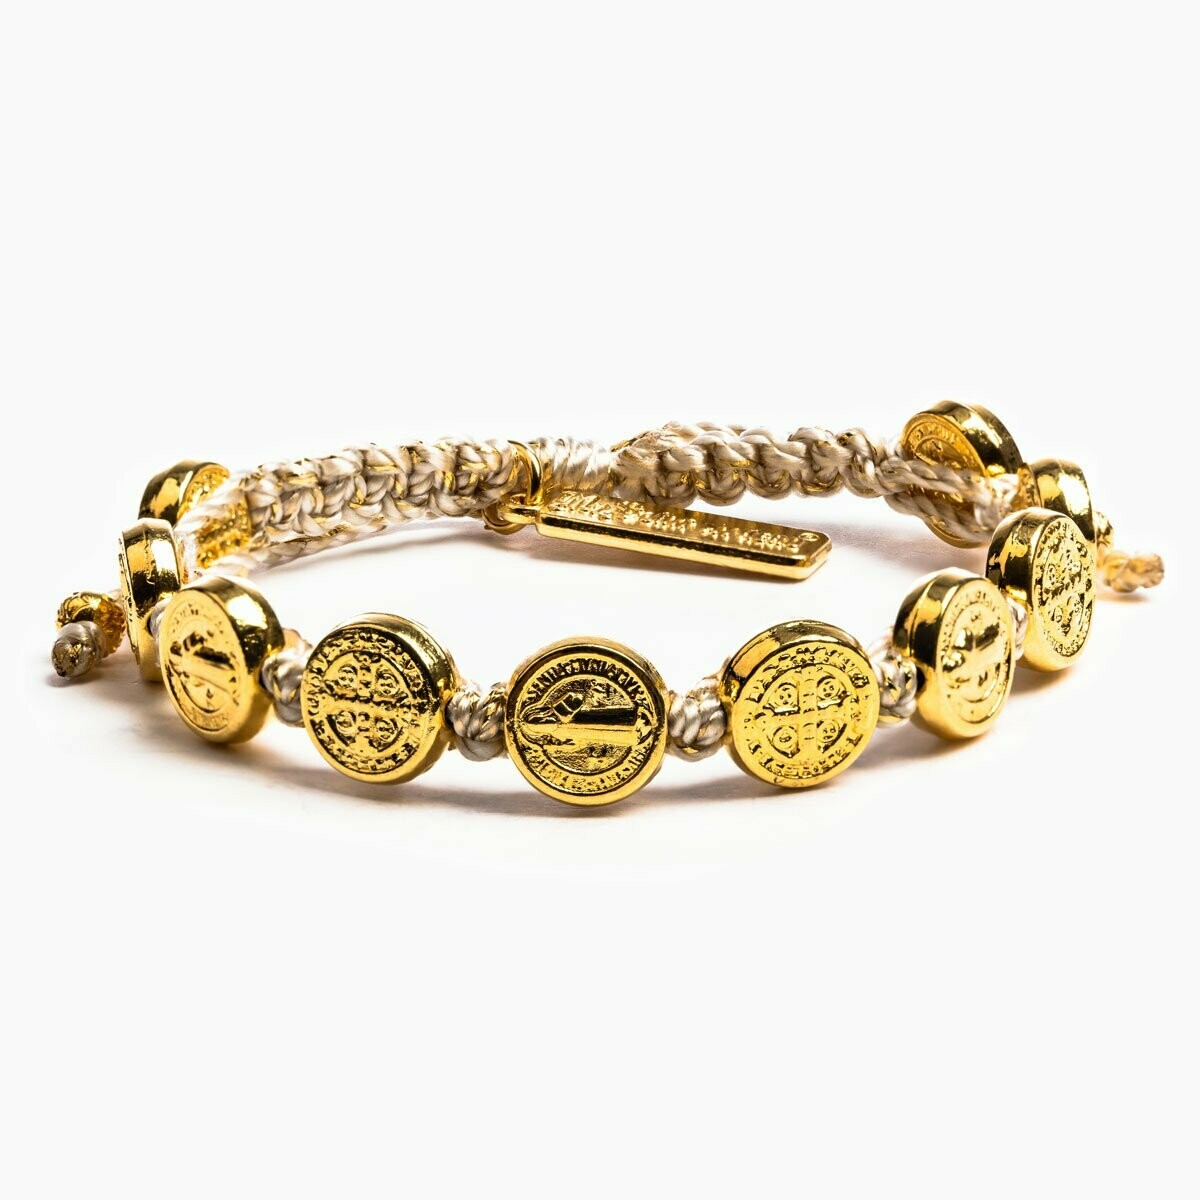 MSMH Benedictine Blessing Bracelet (Gold/Metallic Gold)